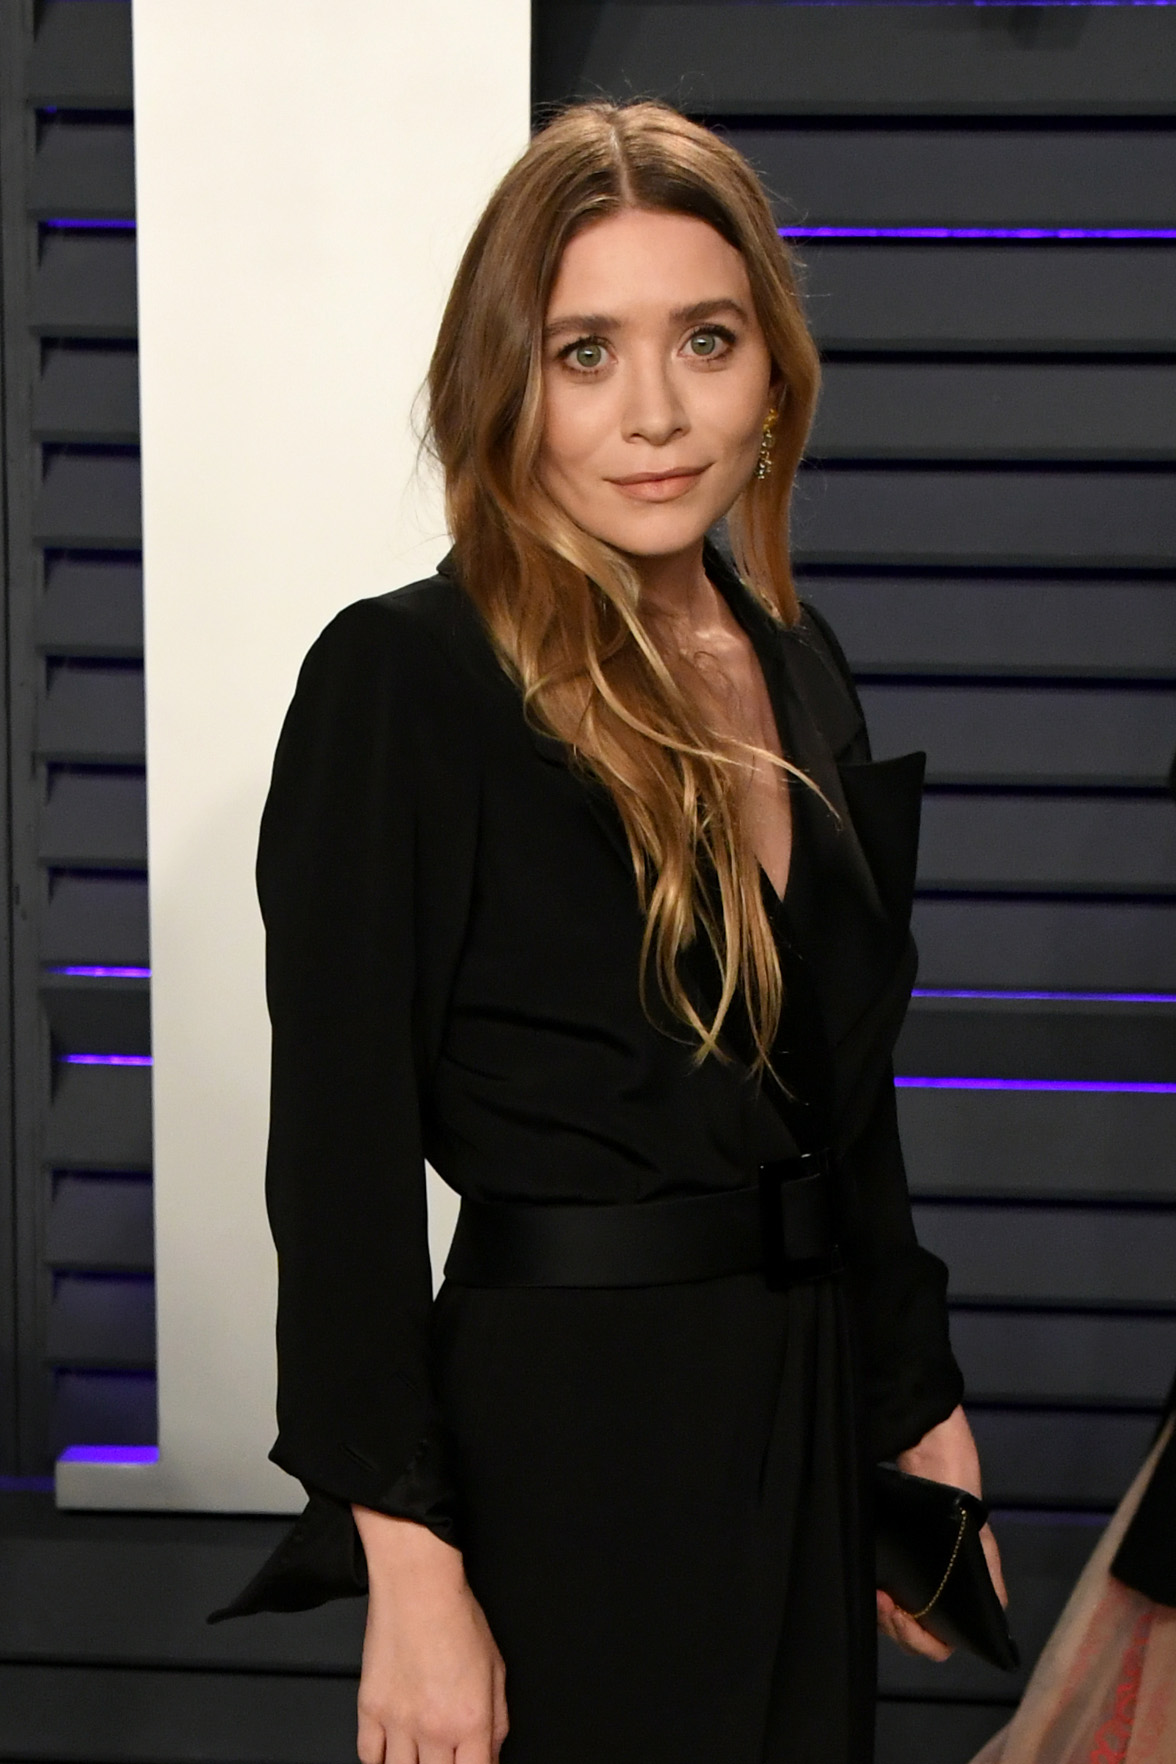 Ashley Olsen Made a Rare Red Carpet Appearance Without Sister Mary-Kate